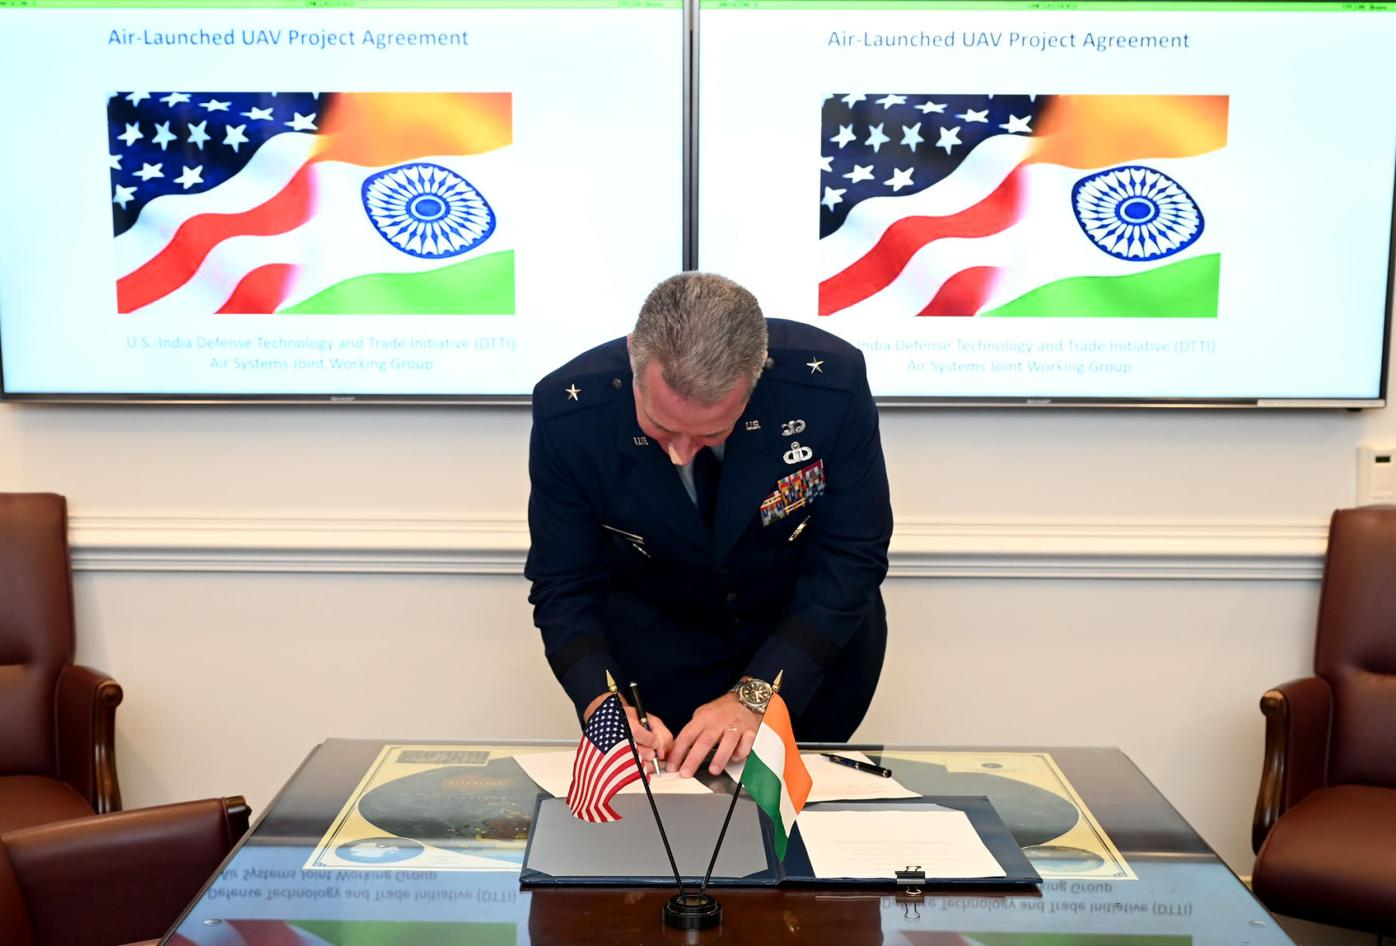 US-India Defense Technology and Trade Initiative